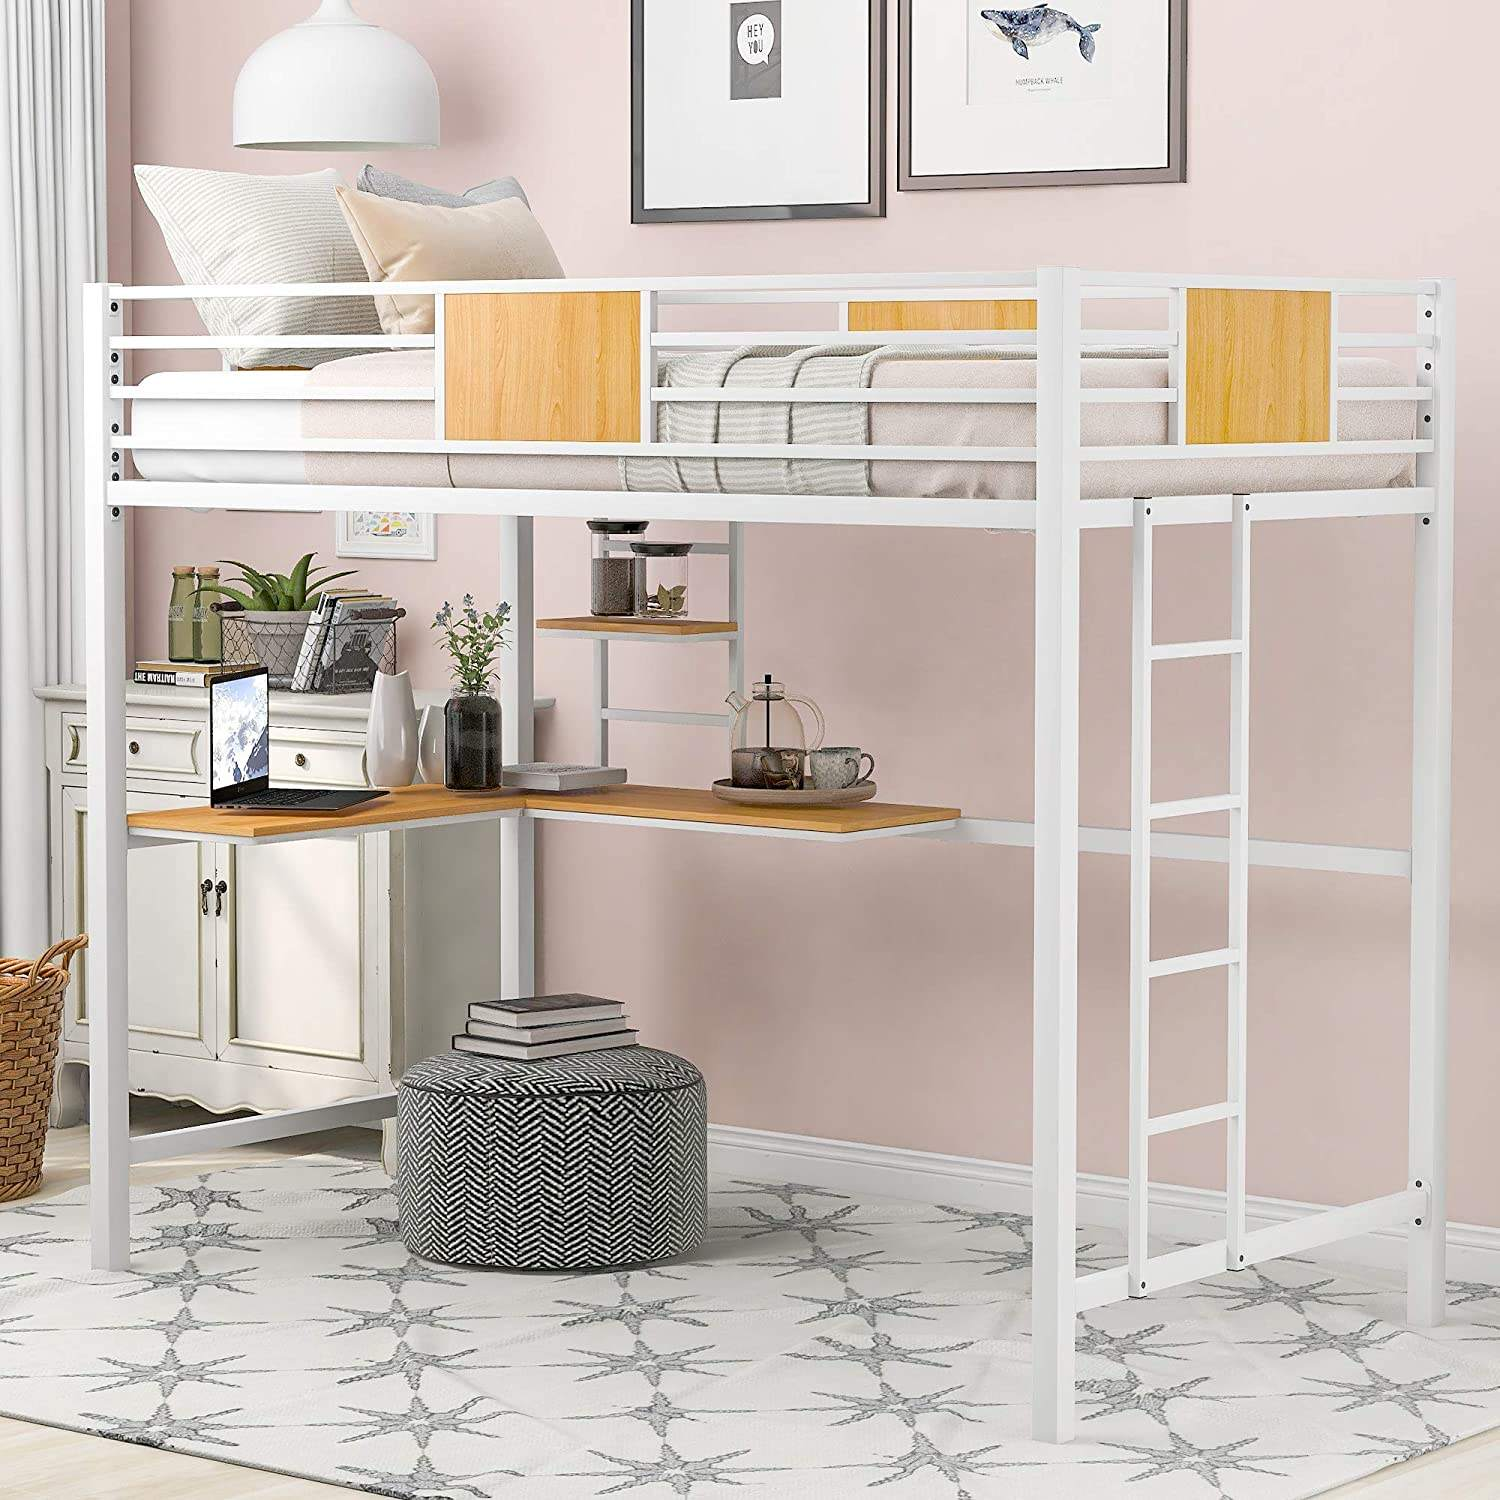 Metal loft Bed, with Railing, with Desk and Shelf